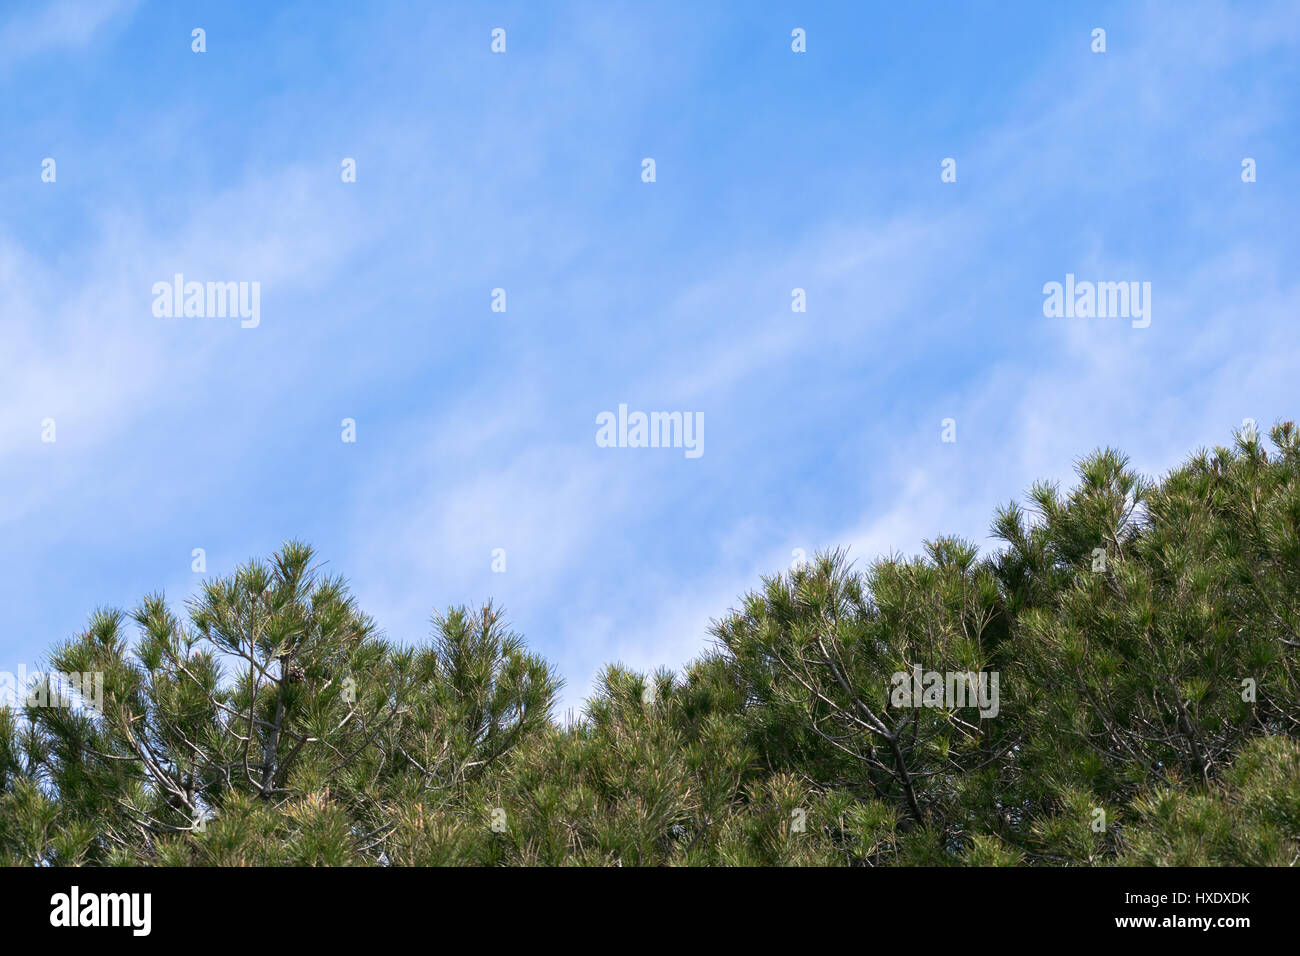 blue sky with clouds adobe pine trees - Stock Image